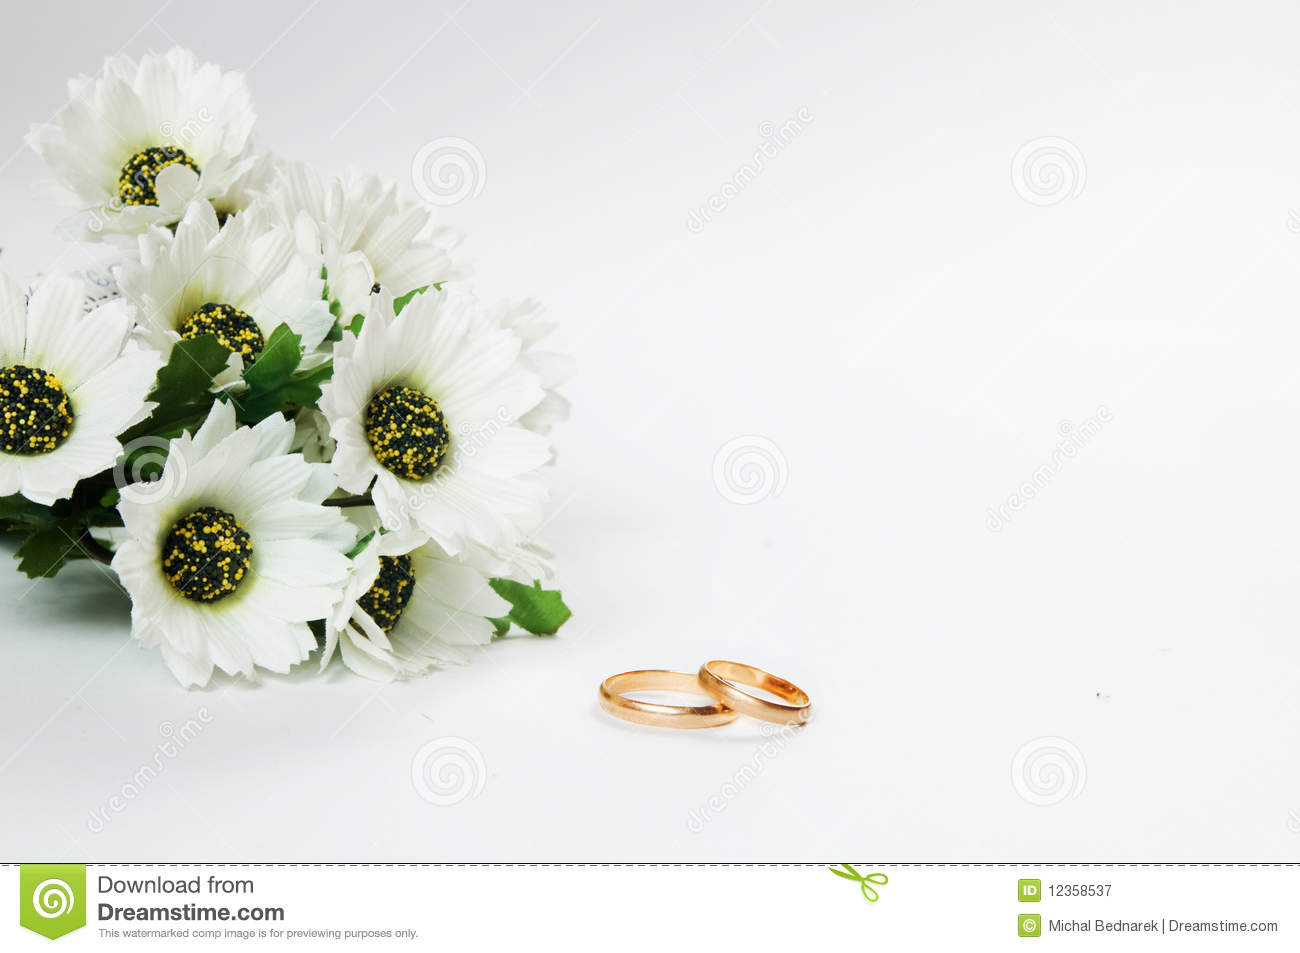 Wedding Rings And Flowers Stock Image. Image Of Marriage